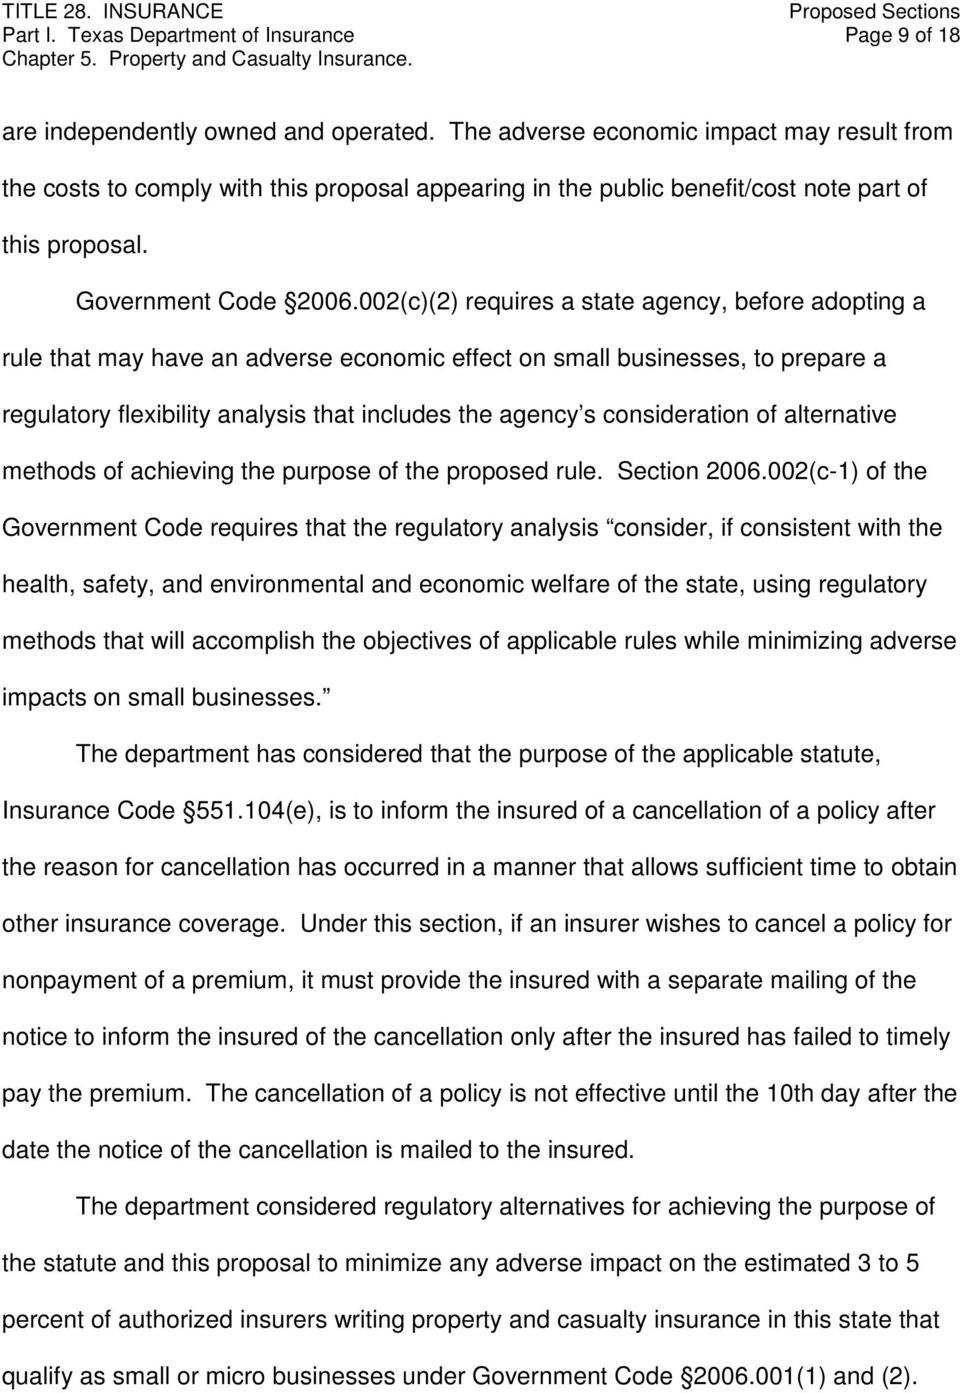 002(c)(2) requires a state agency, before adopting a rule that may have an adverse economic effect on small businesses, to prepare a regulatory flexibility analysis that includes the agency s